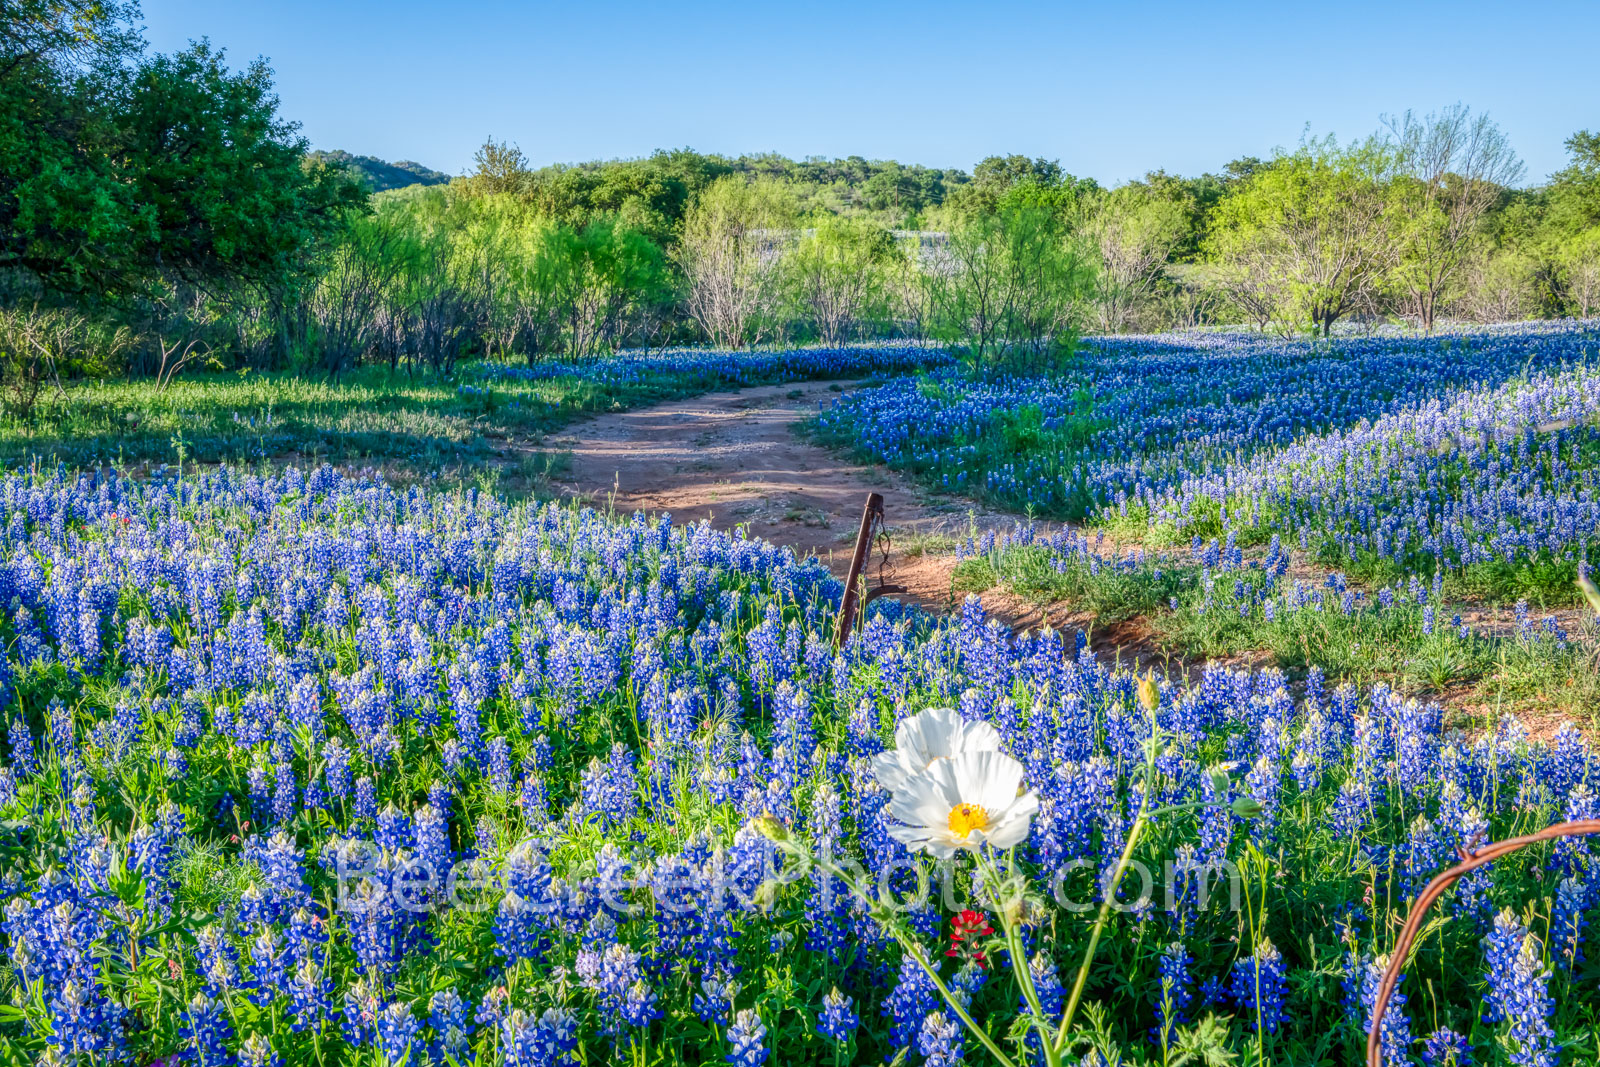 poppies, texas bluebonnets, bluebonnets, wildflowers, texas hill country, texas, field of bluebonnets, blue bonnets, poppy, hill country, shadows, light, road, mesquite, blue, sun, curved road, images